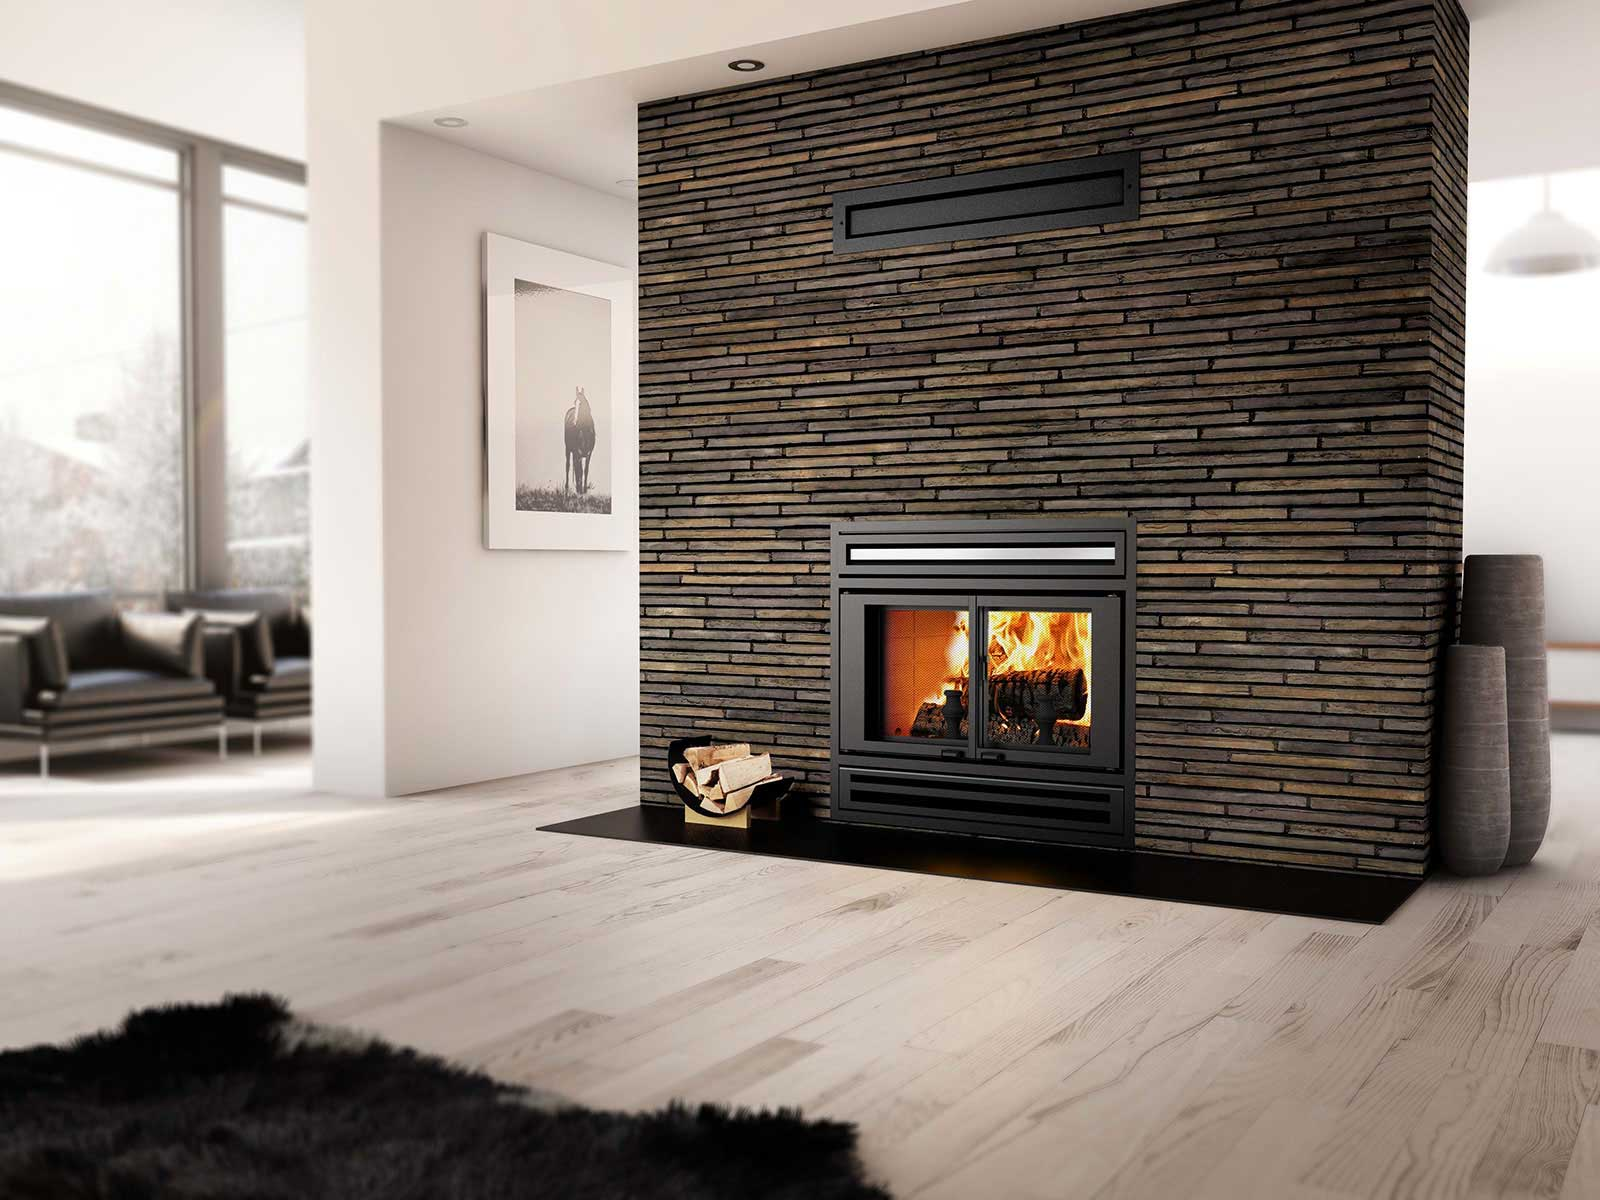 Valcourt Wood Factory-Built, Ambiance & Mass Fireplaces